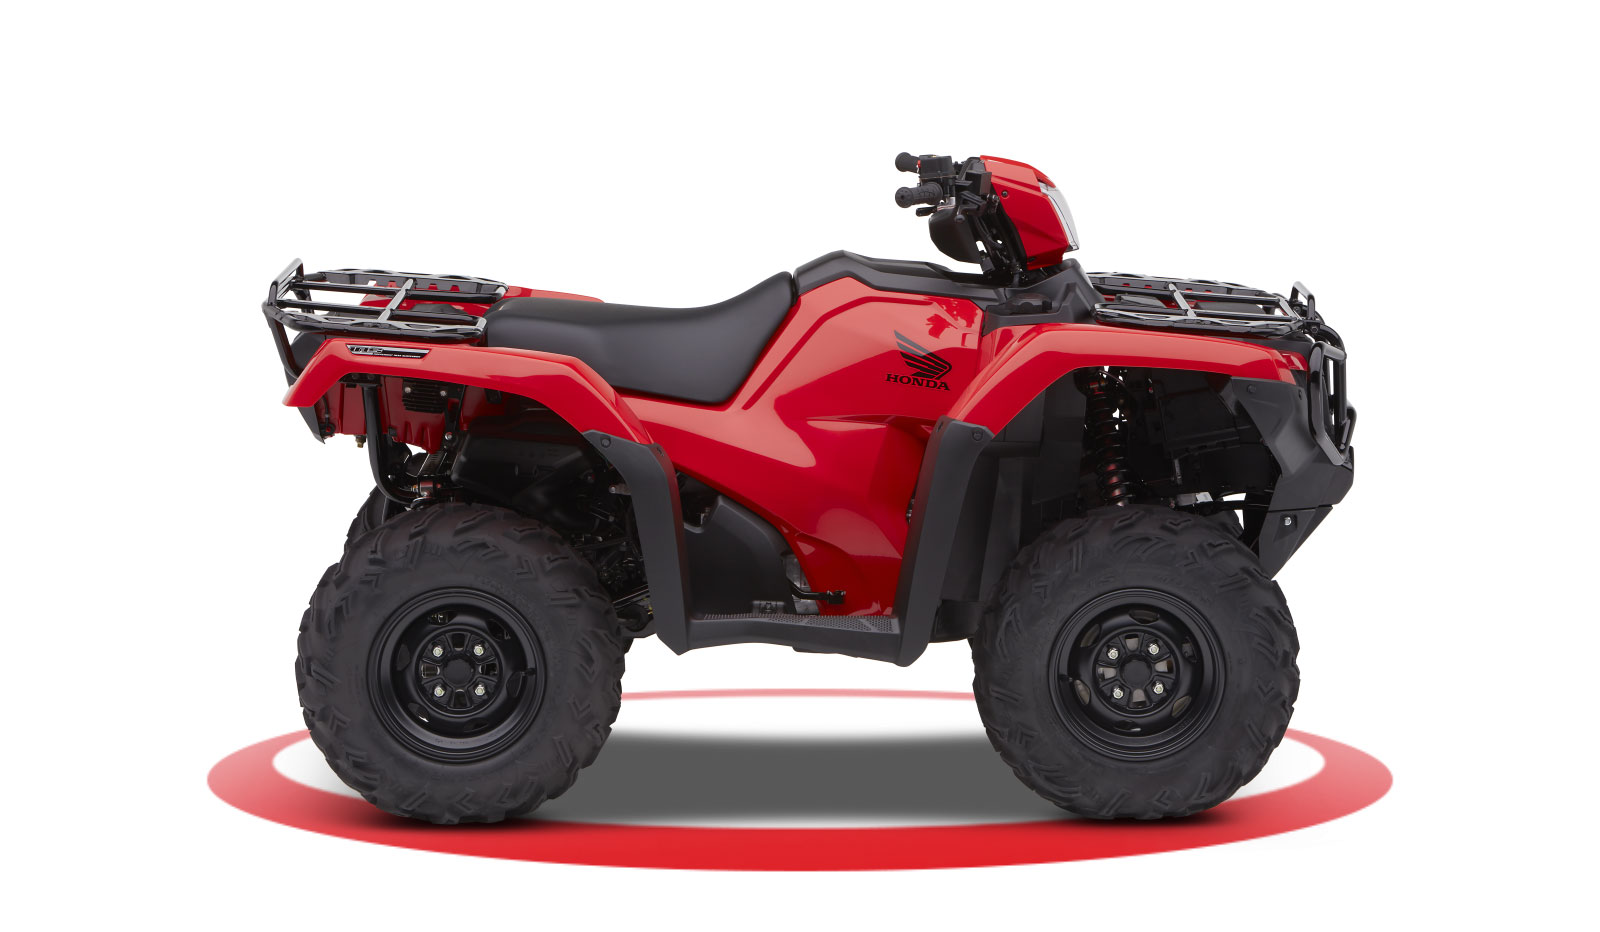 2019 Fourtrax Foreman Rubicon 4x4 Eps Overview Honda